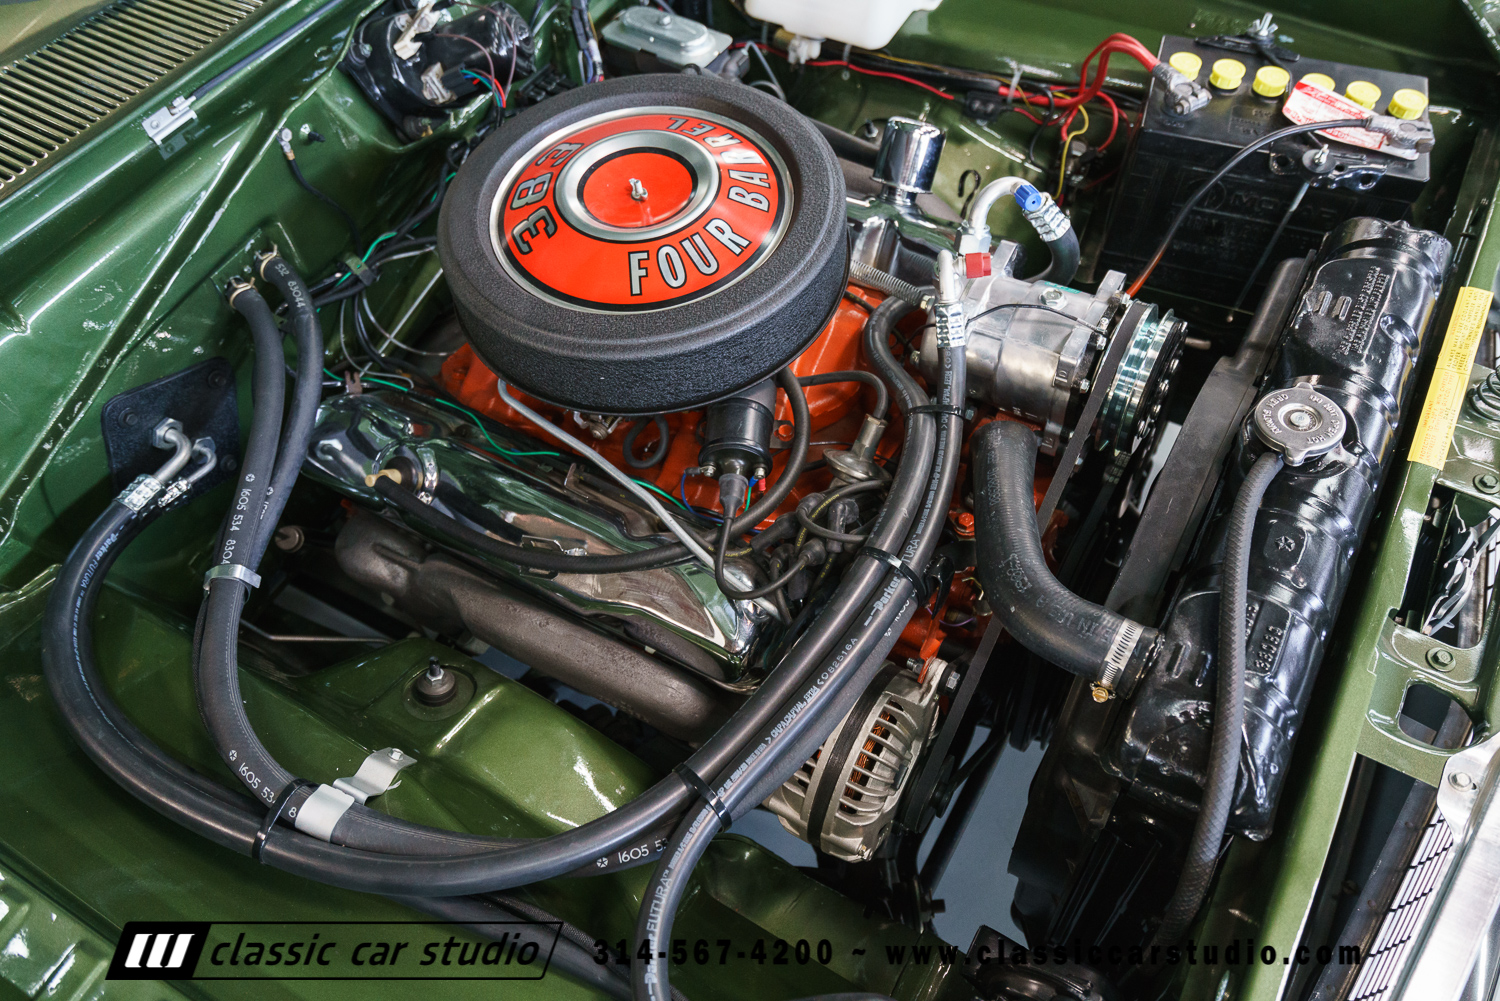 Ford Truck F Overhaulin in addition  further Dart Gts in addition  likewise Eldorado. on 1962 chevy c10 truck